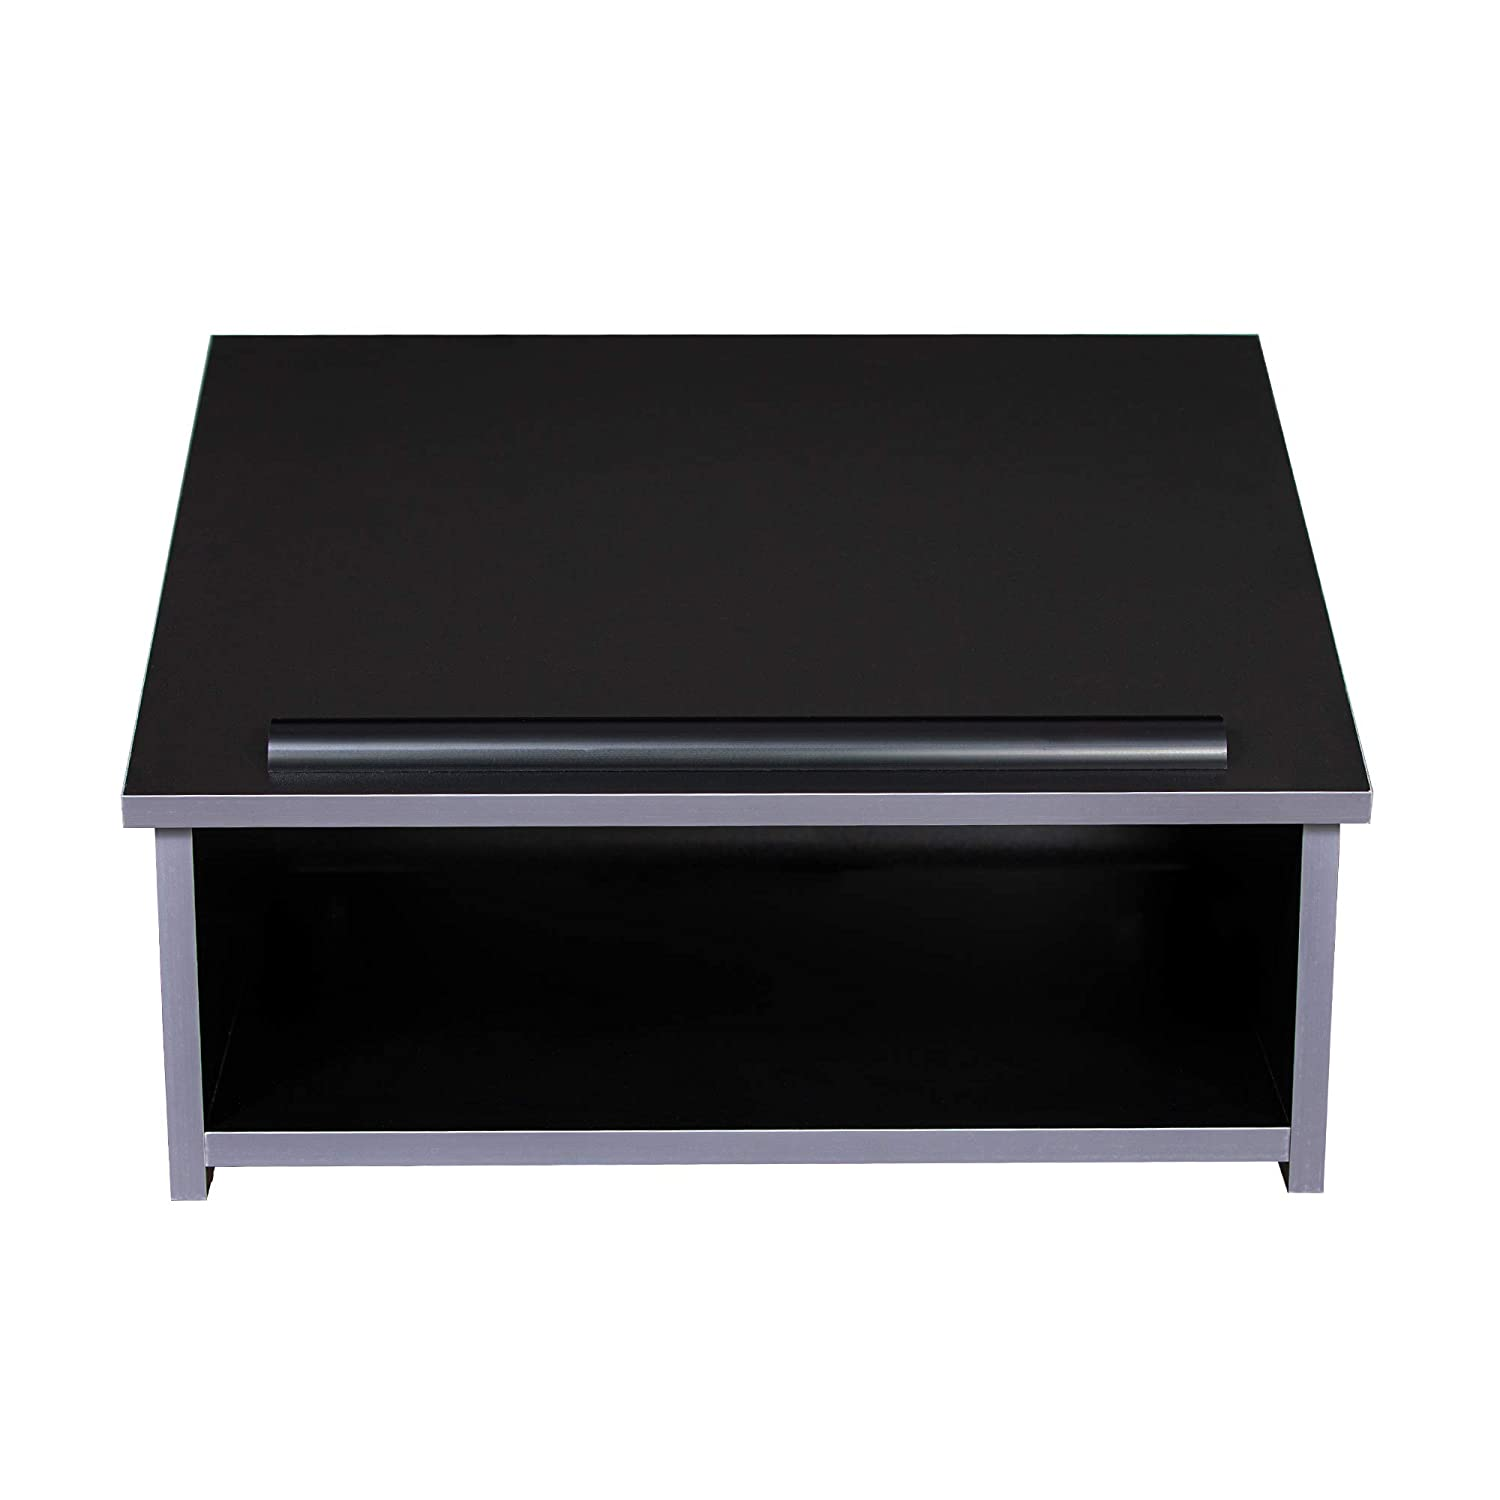 OEF Furnishings Portable Tabletop Lectern with Bookstop and Storage Shelf Black